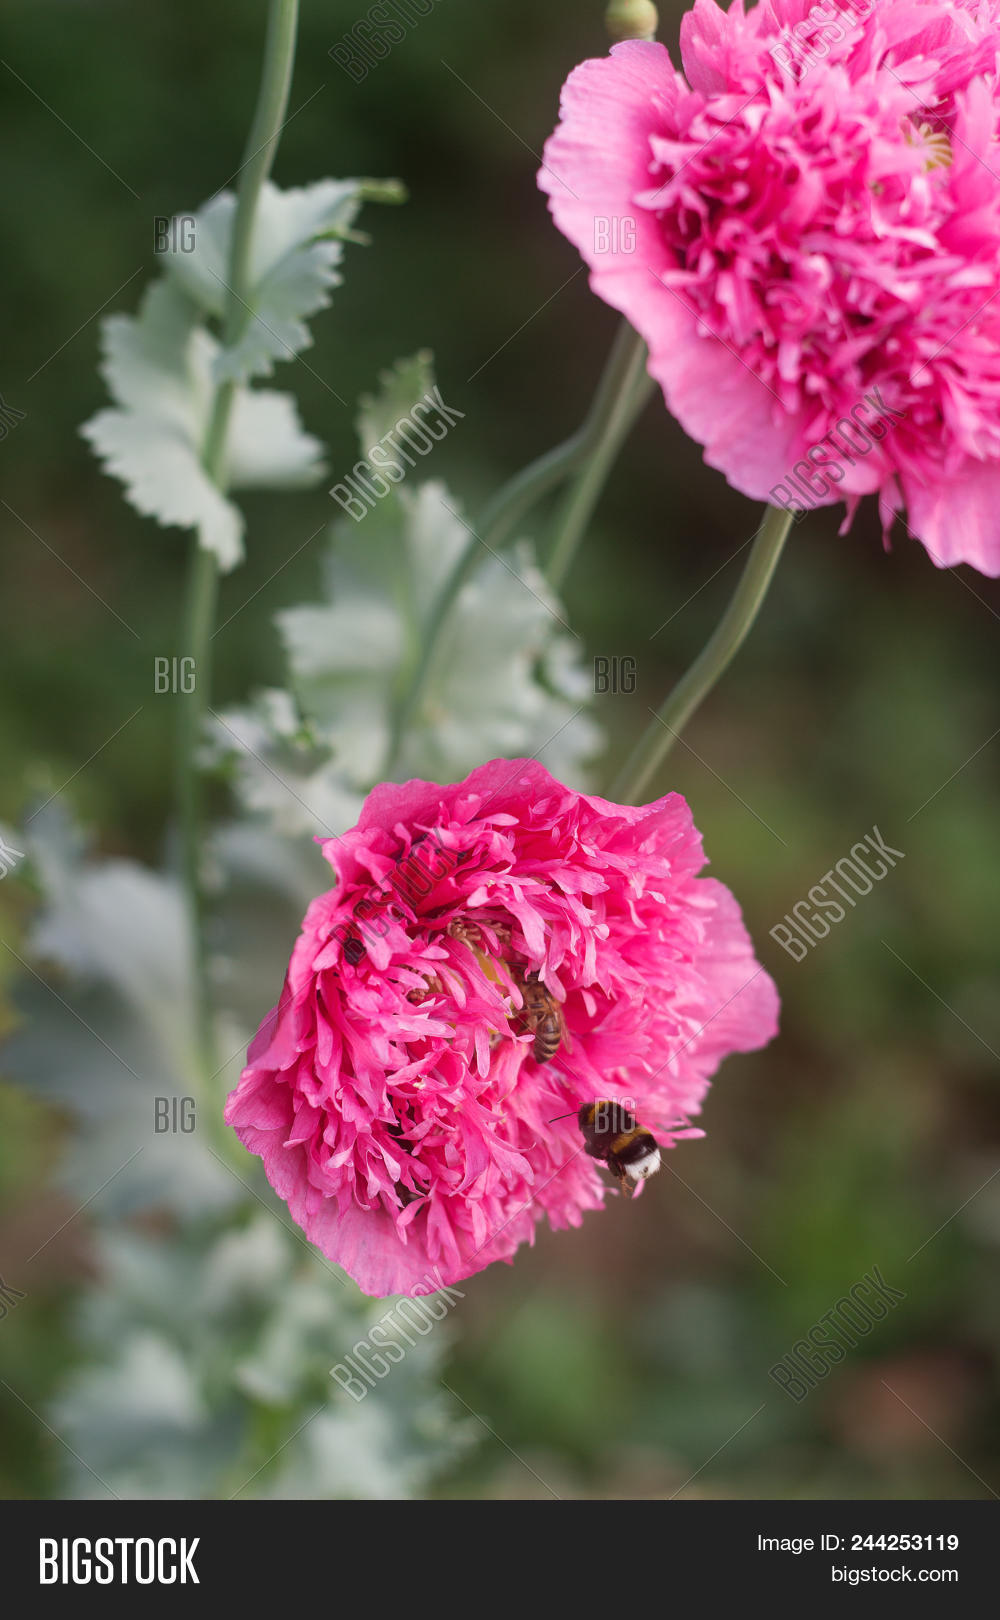 Flowers Unusual Double Image Photo Free Trial Bigstock